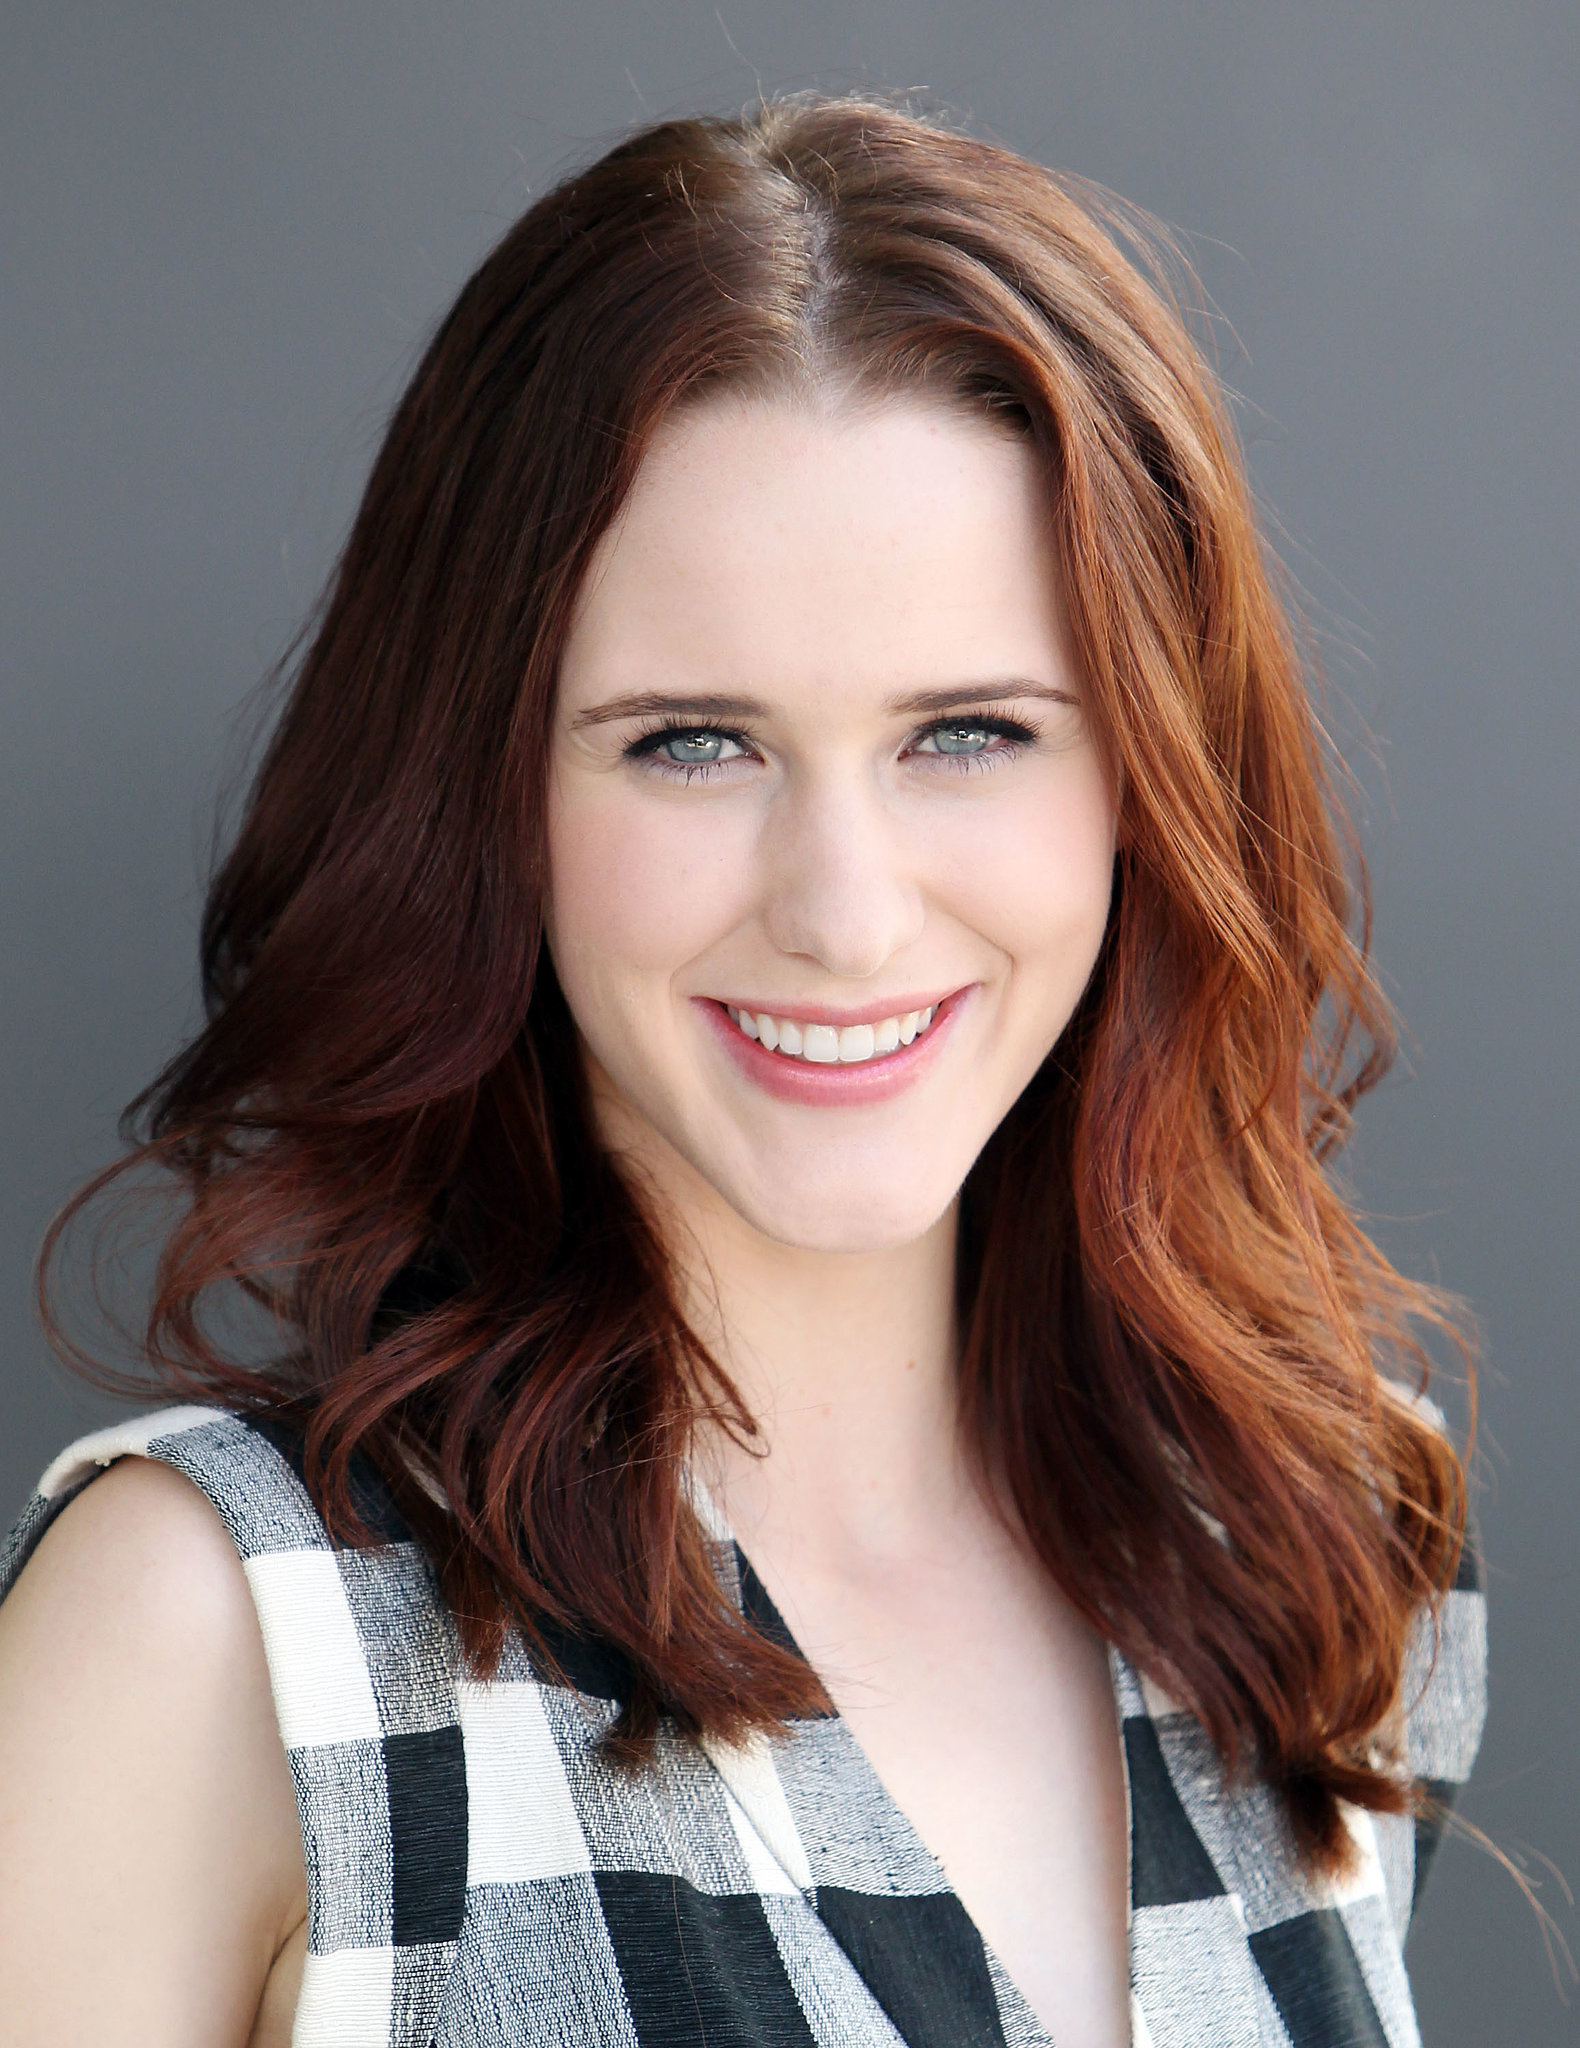 The 27-year old daughter of father Randy Brosnahan and mother Anna Brosnahan, 155 cm tall Rachel Brosnahan in 2017 photo